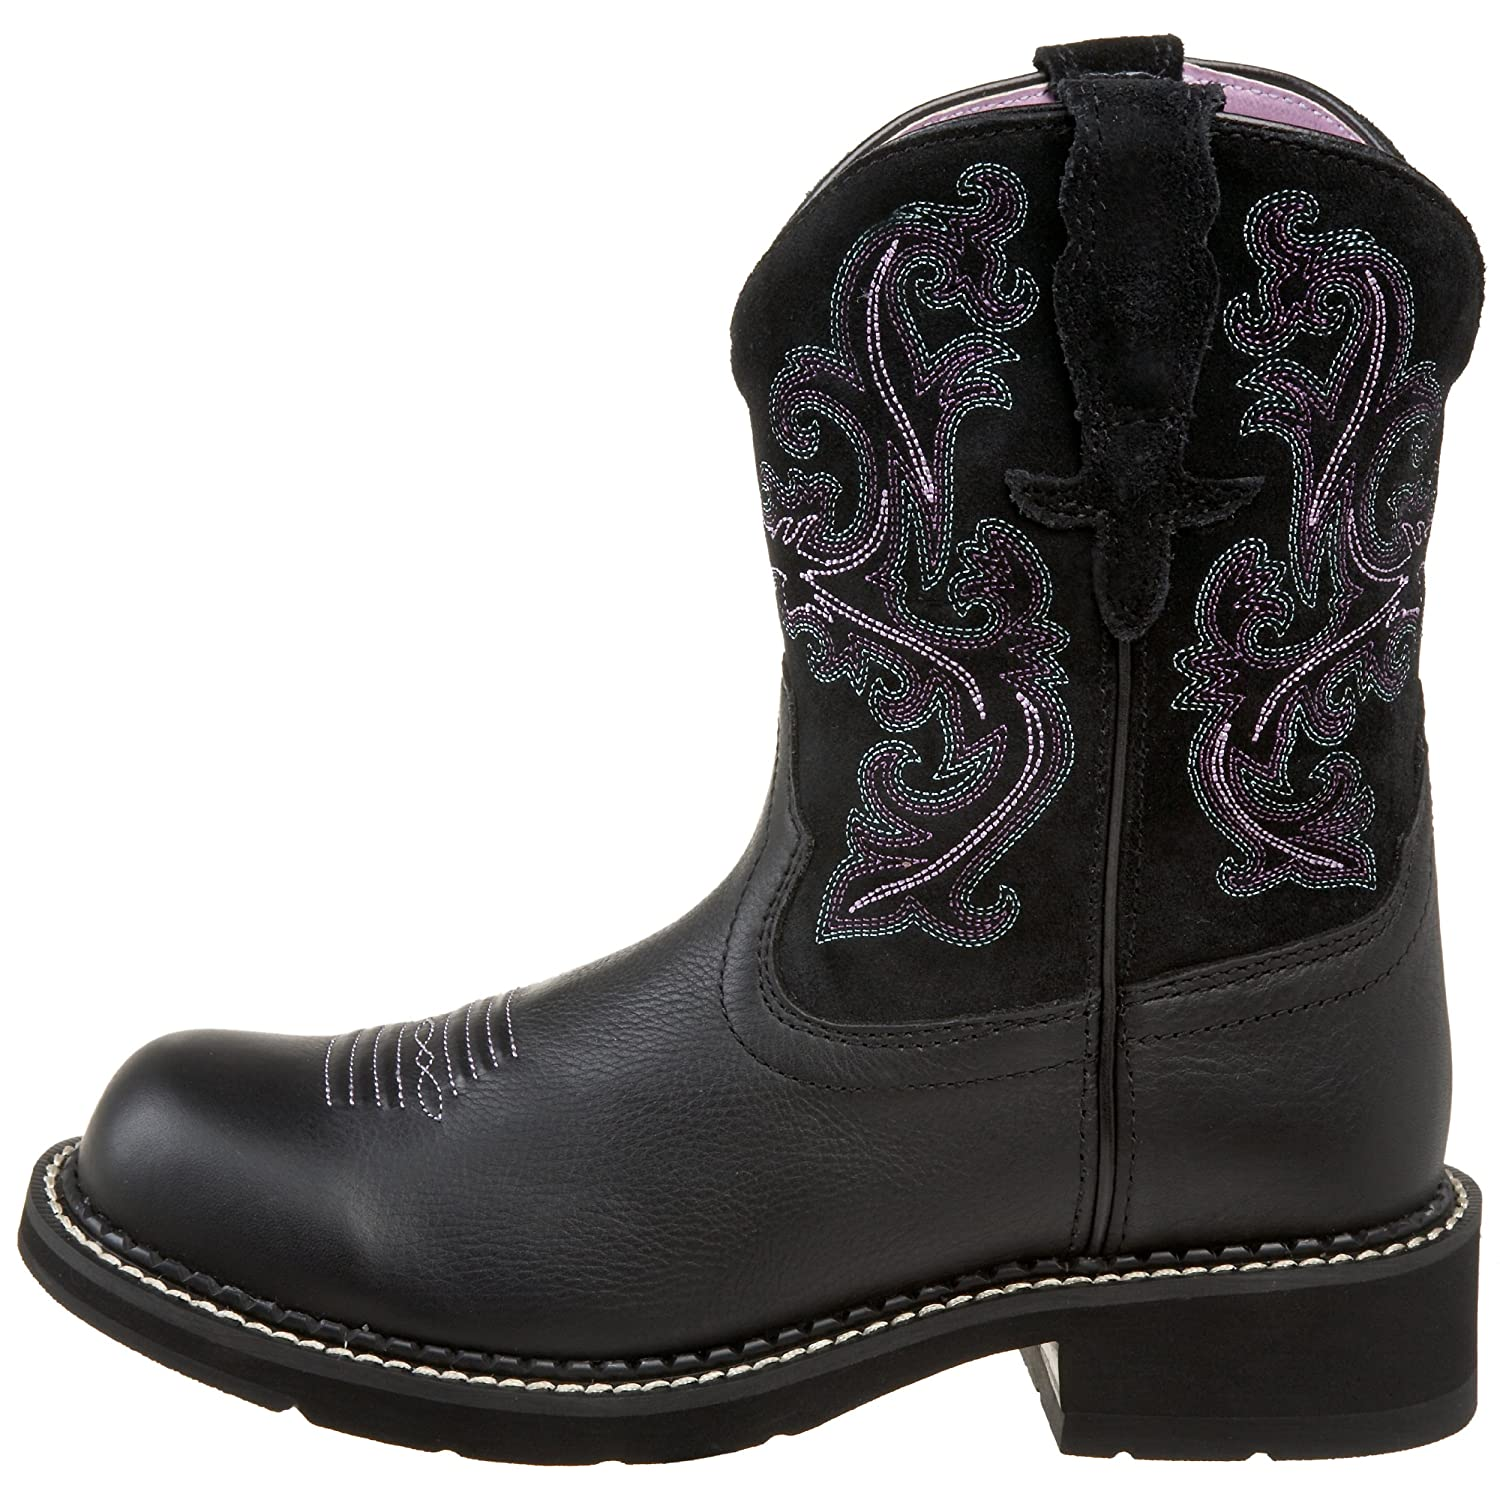 Ariat Women Women's Fatbaby Collection Western Cowboy Boot Deertan/Orchid B0028AE696 7.5 B(M) US|Black Deertan/Orchid Boot b6635e